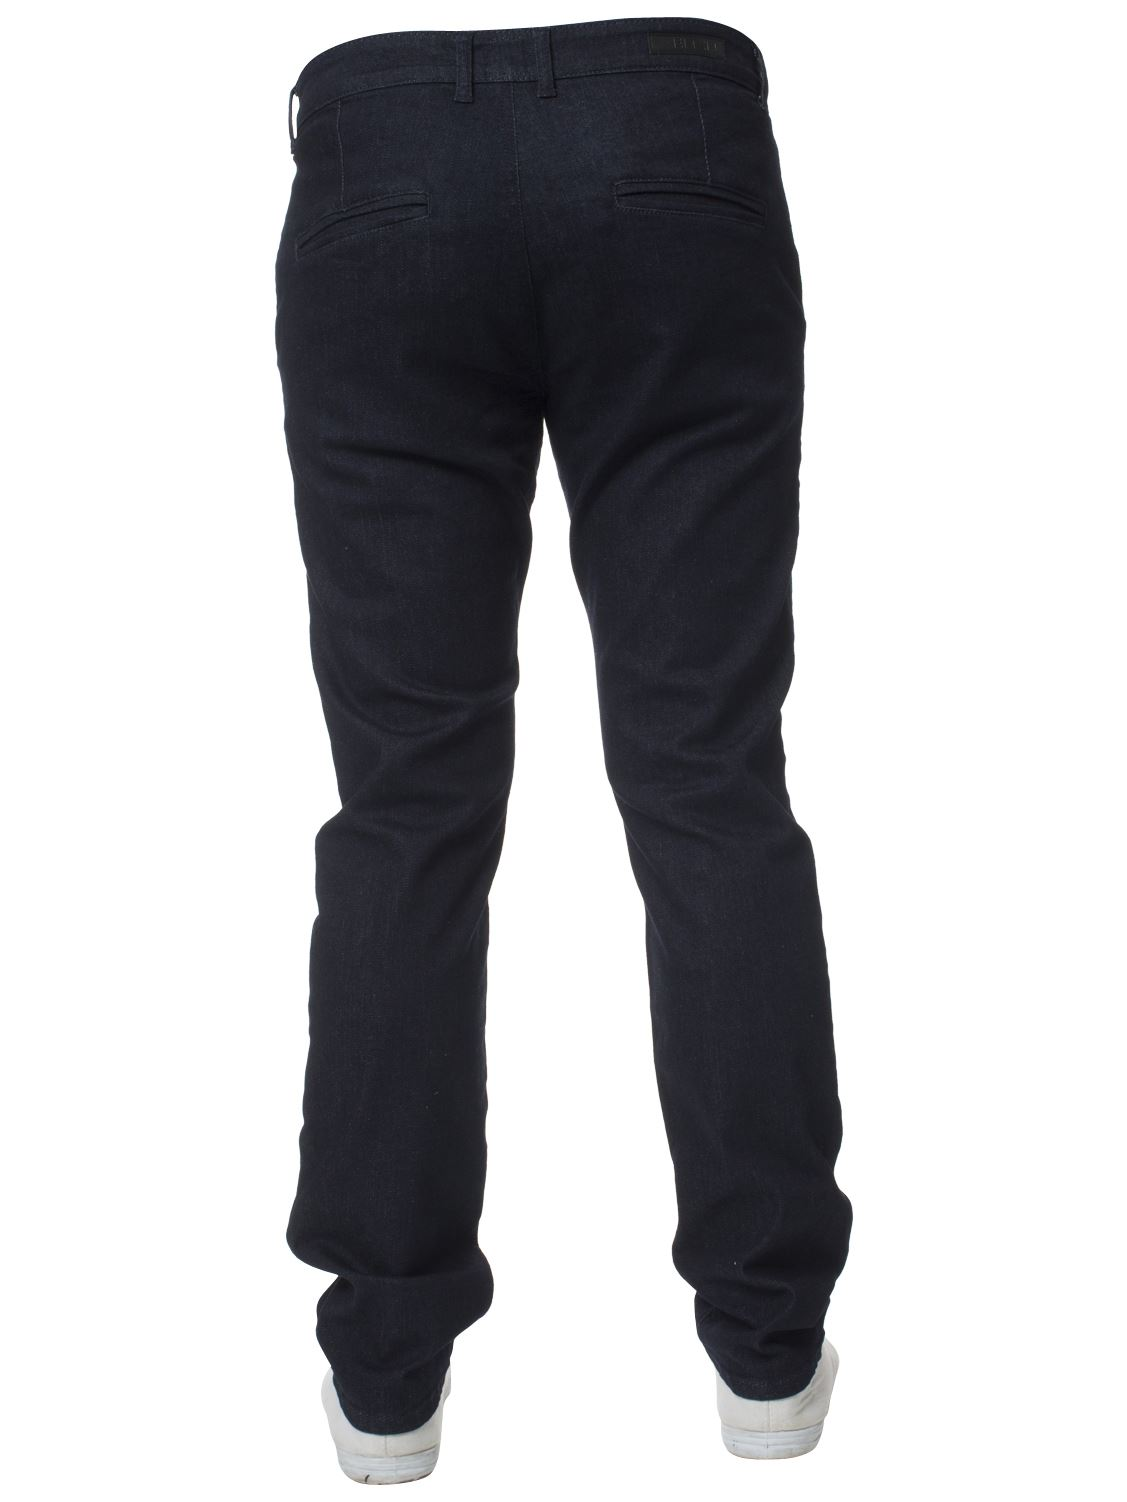 New-Mens-Enzo-Jeans-Denim-Chinos-Skinny-Slim-Fit-Super-Stretch-Trousers-Pants thumbnail 11